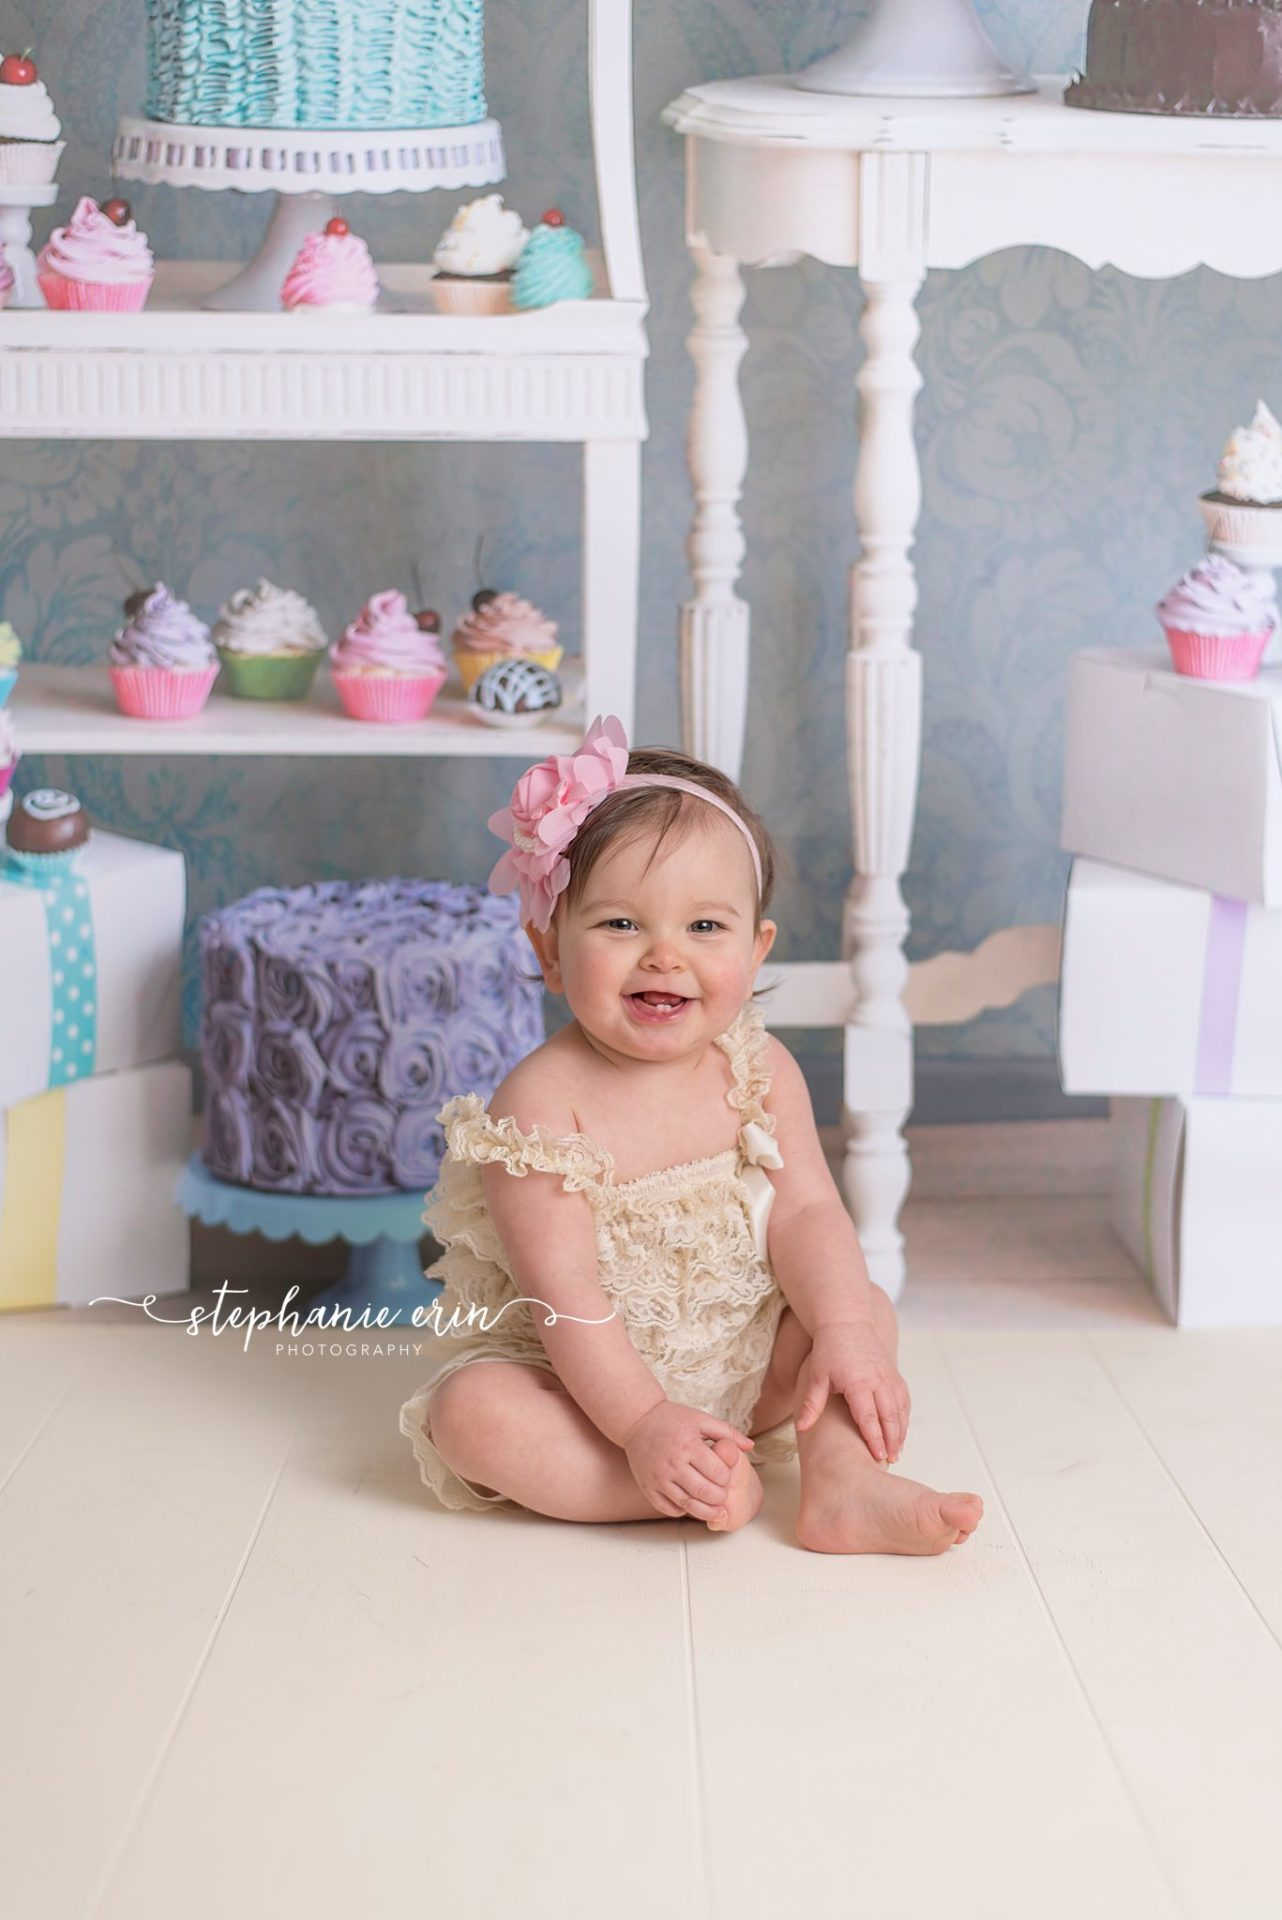 RYLIE'S CAKE SMASH  |  STEPHANIE ERIN PHOTOGRAPHY  |  ST GEORGE UTAH CAKE SMASH PHOTOGRAPHER